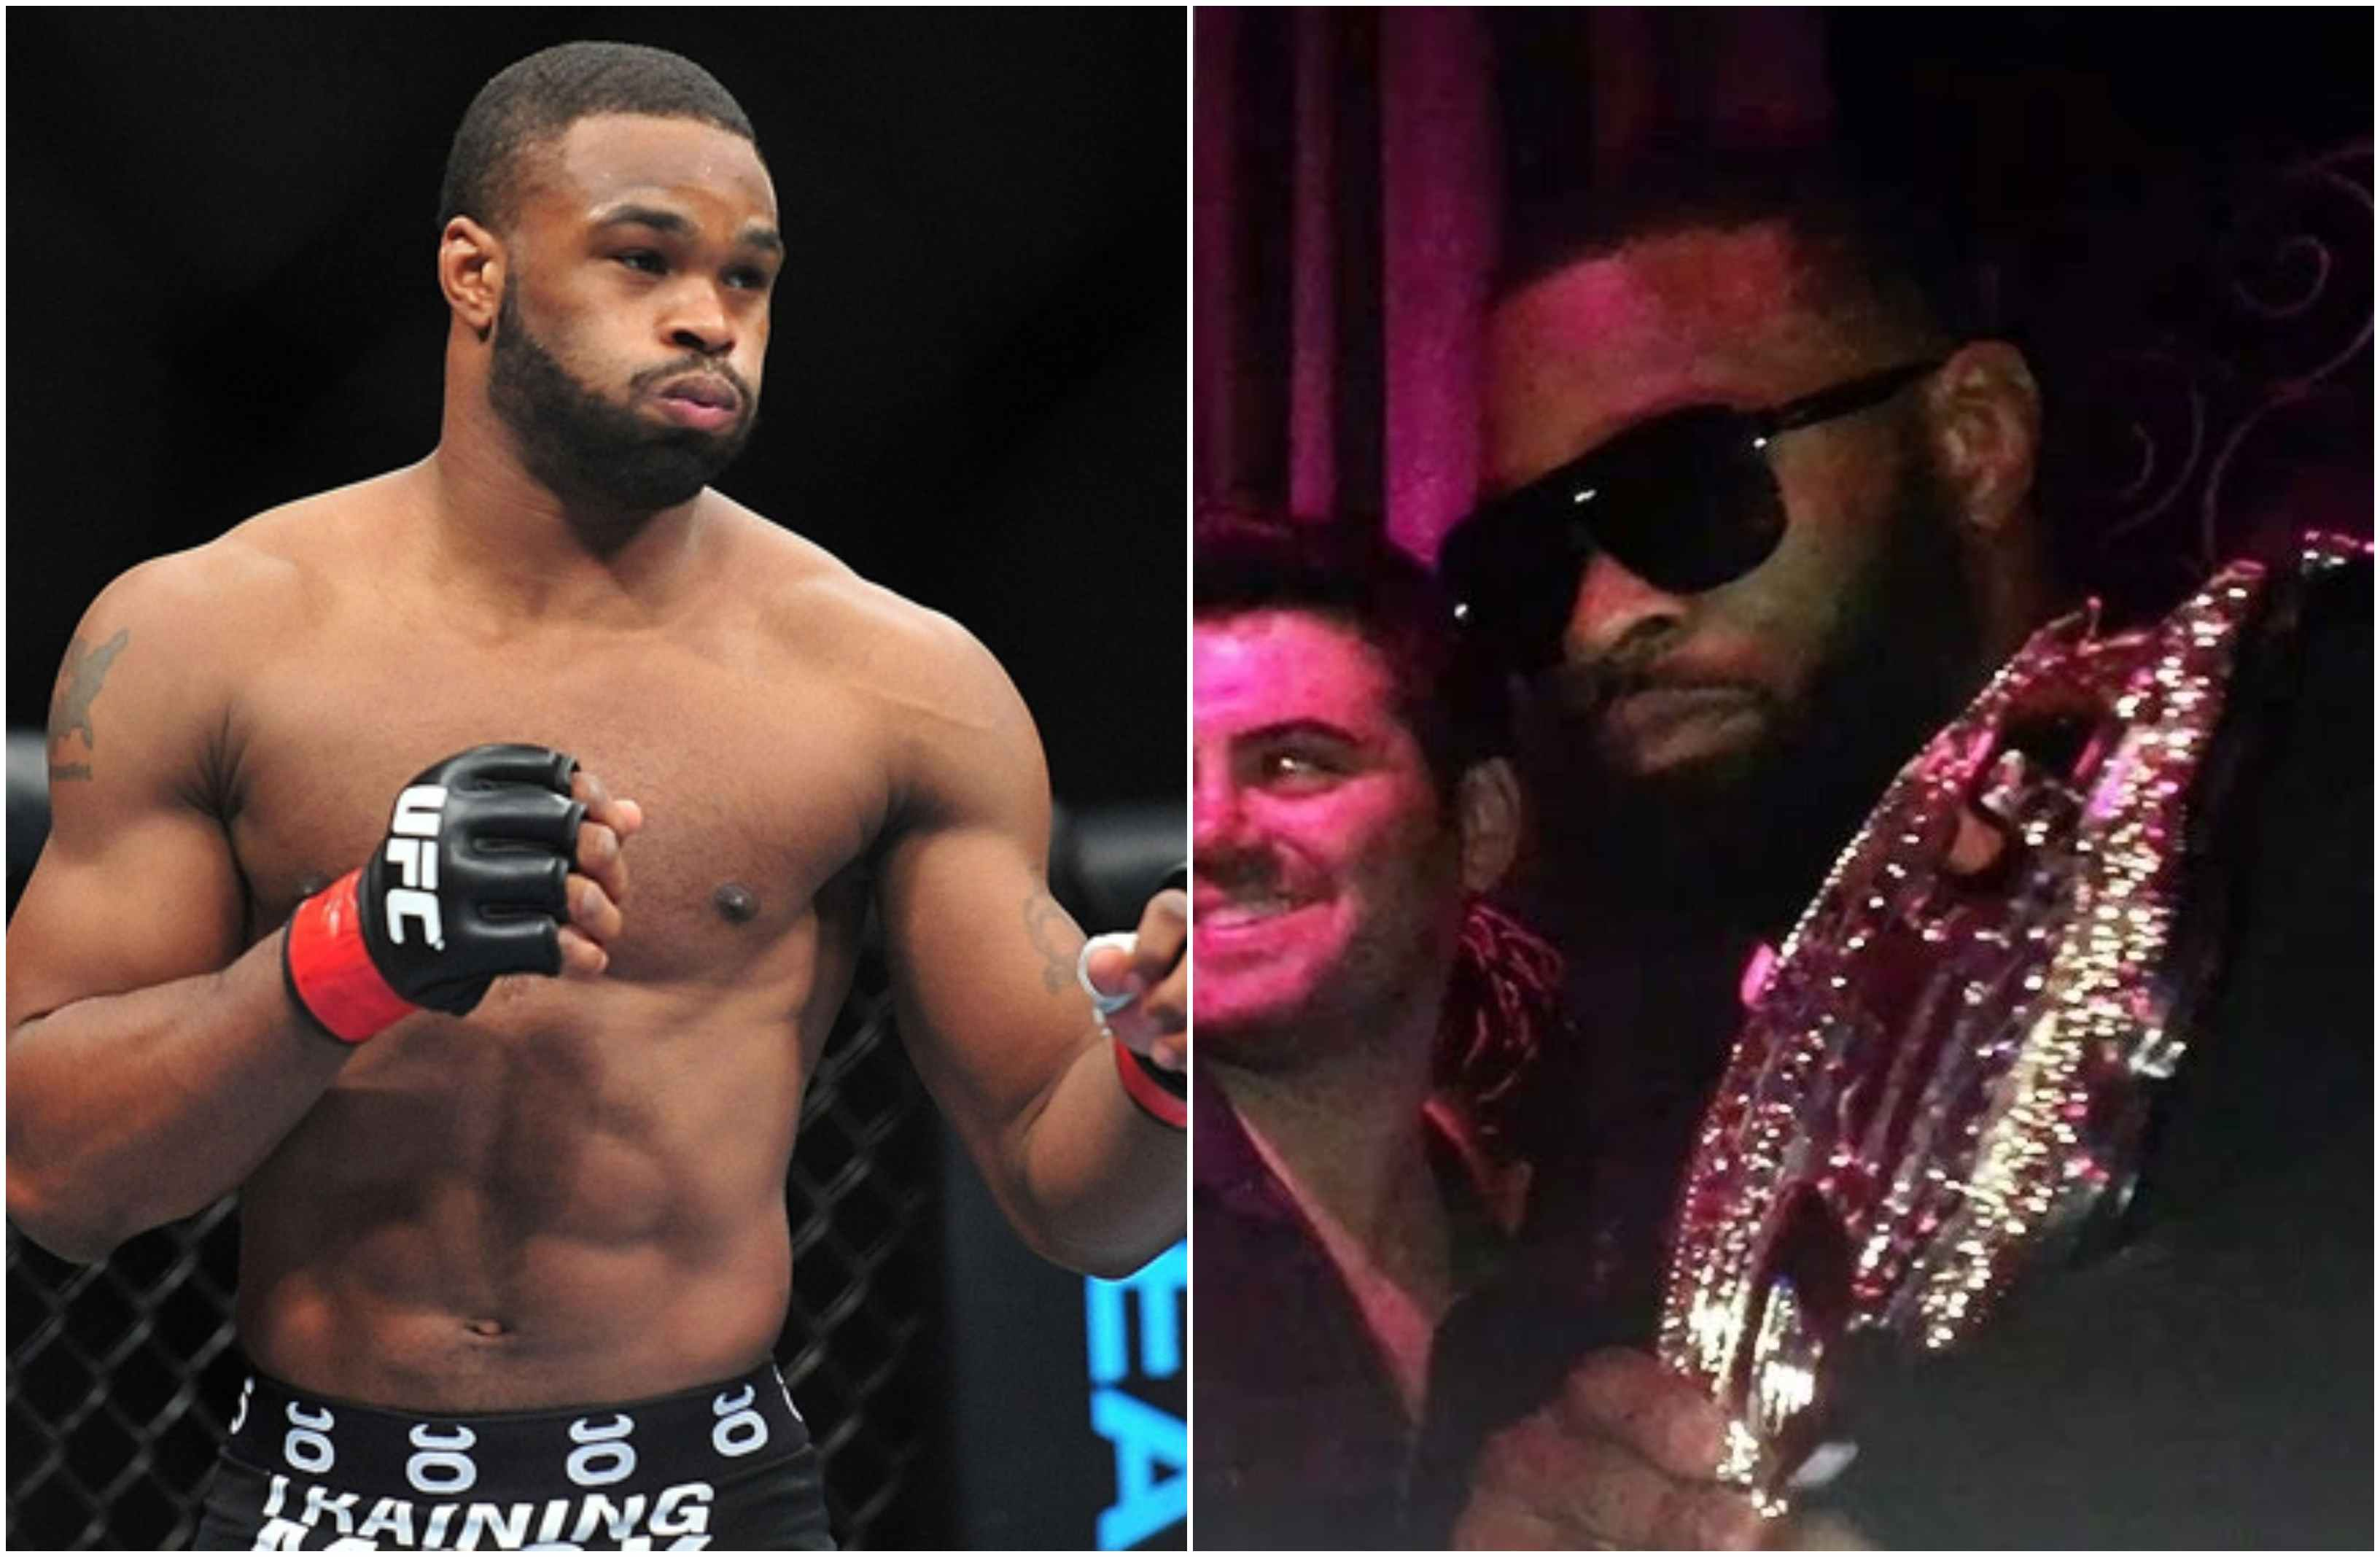 Tyron Woodley reveals he bought 7 cars, 2 houses and blinged out when he was UFC Champ - Tyron